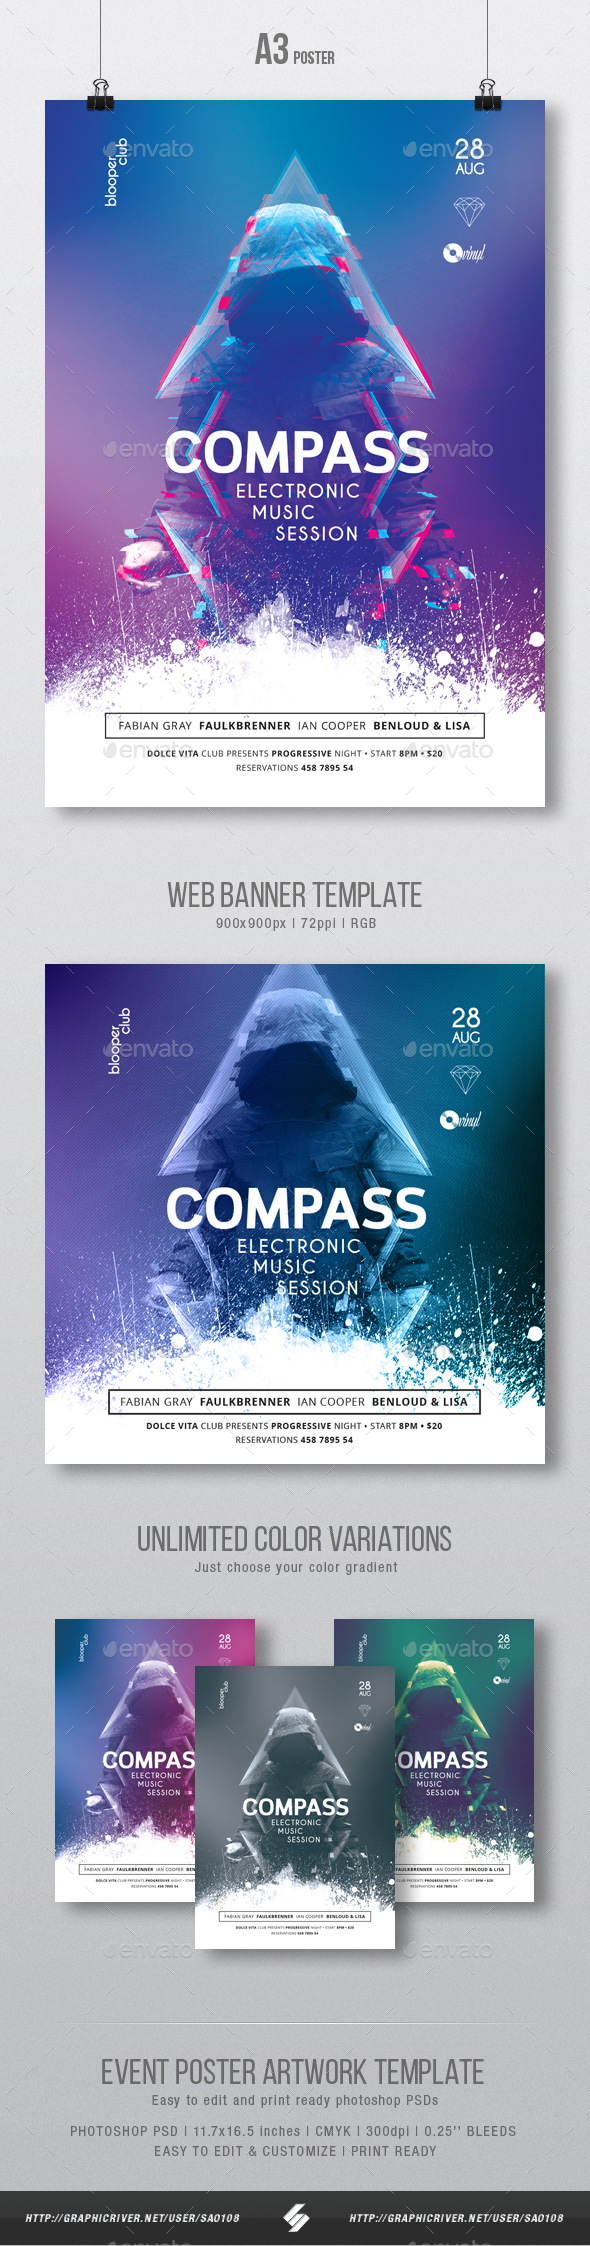 Compass - Progressive Party Flyer / Poster Template A3 - Clubs & Parties Events